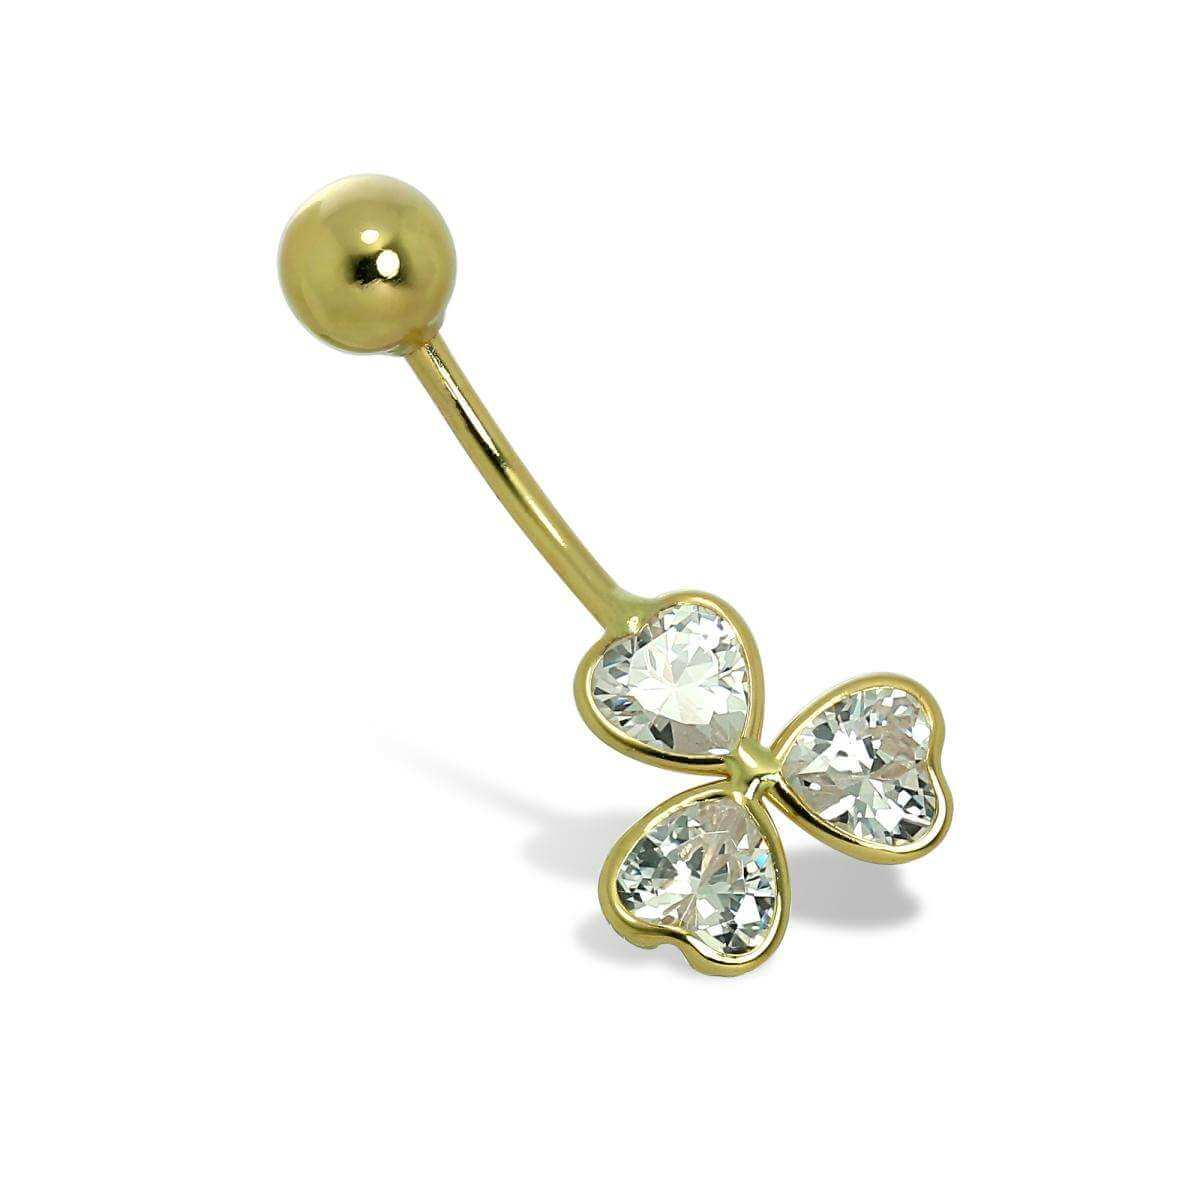 9ct Gold & CZ Crystal Clover Flower Ball End Belly Bar Piercing